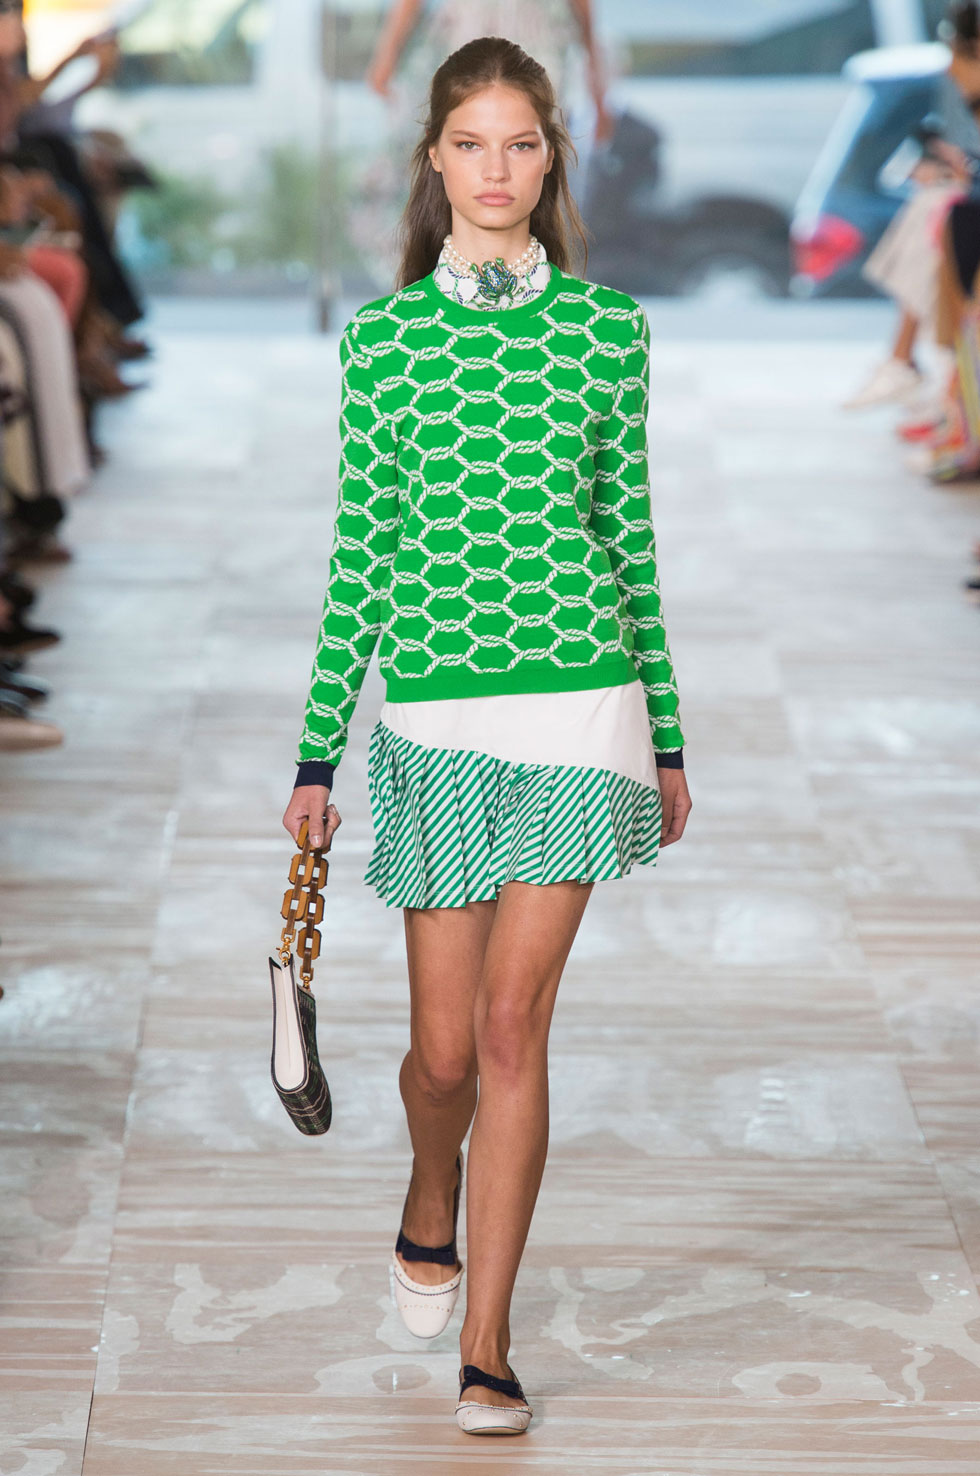 40 Looks From the Tory Burch Spring 2017 Show - Tory Burch ...